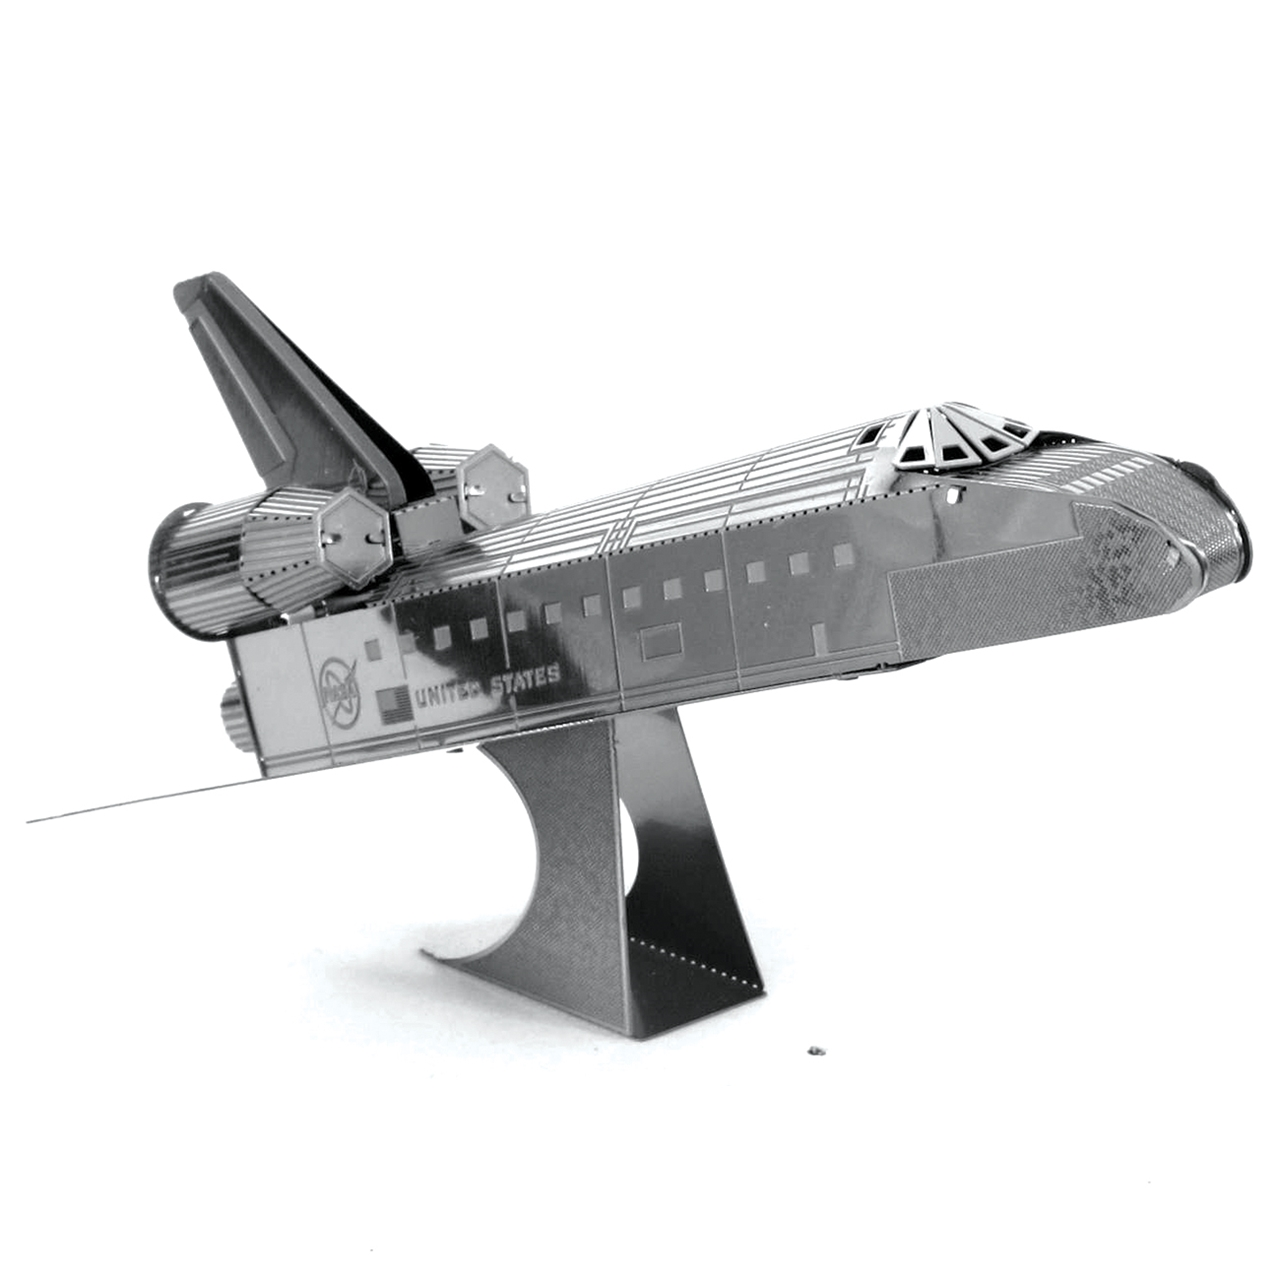 space shuttle endeavour toy - photo #31